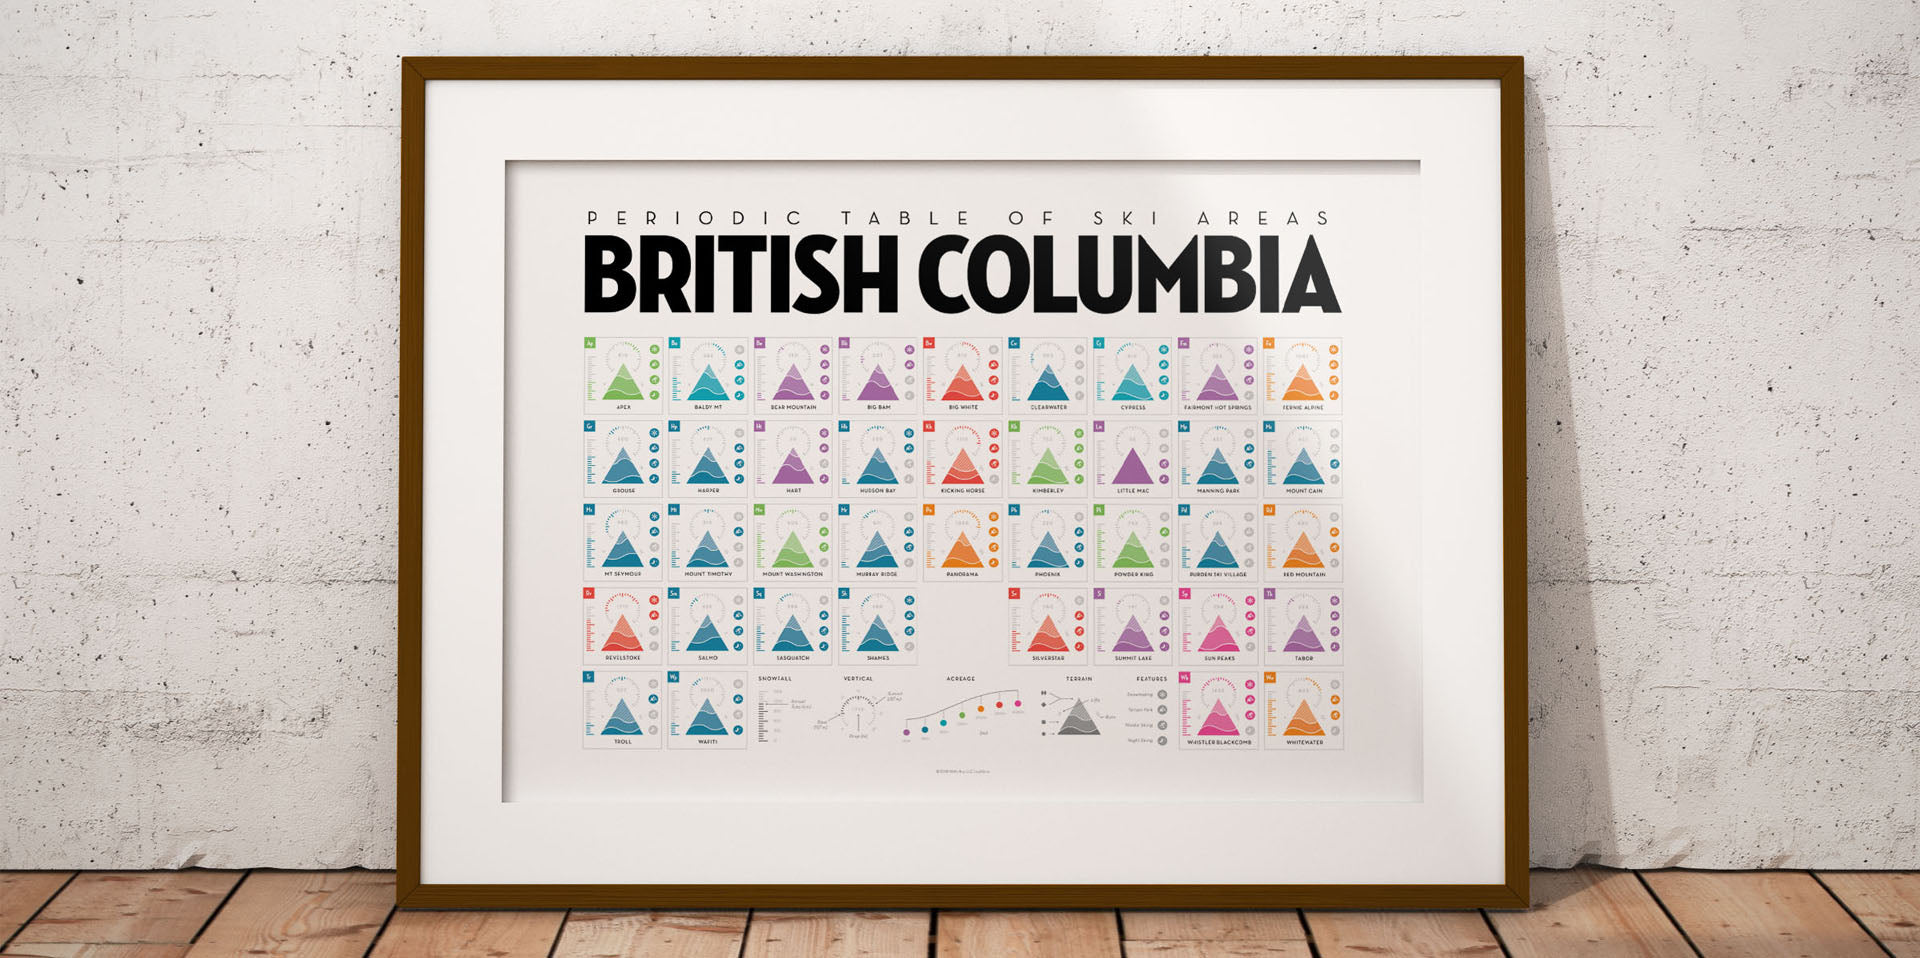 Periodic Table of Ski Areas: British Columbia